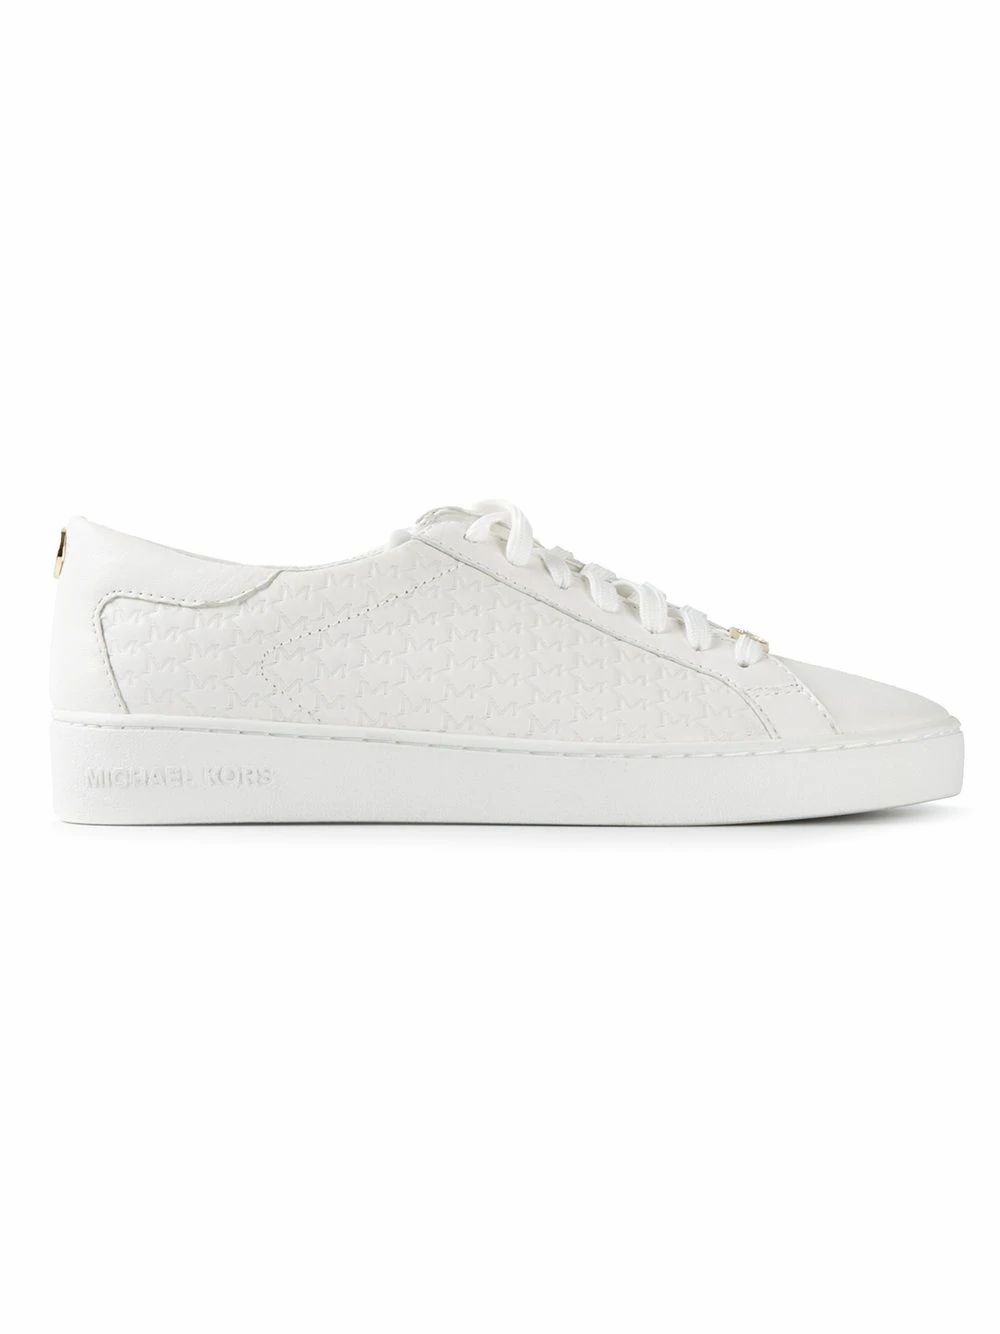 Michael Kors Leathers MICHAEL KORS WOMEN'S 43R5COFP2L085 WHITE LEATHER SNEAKERS